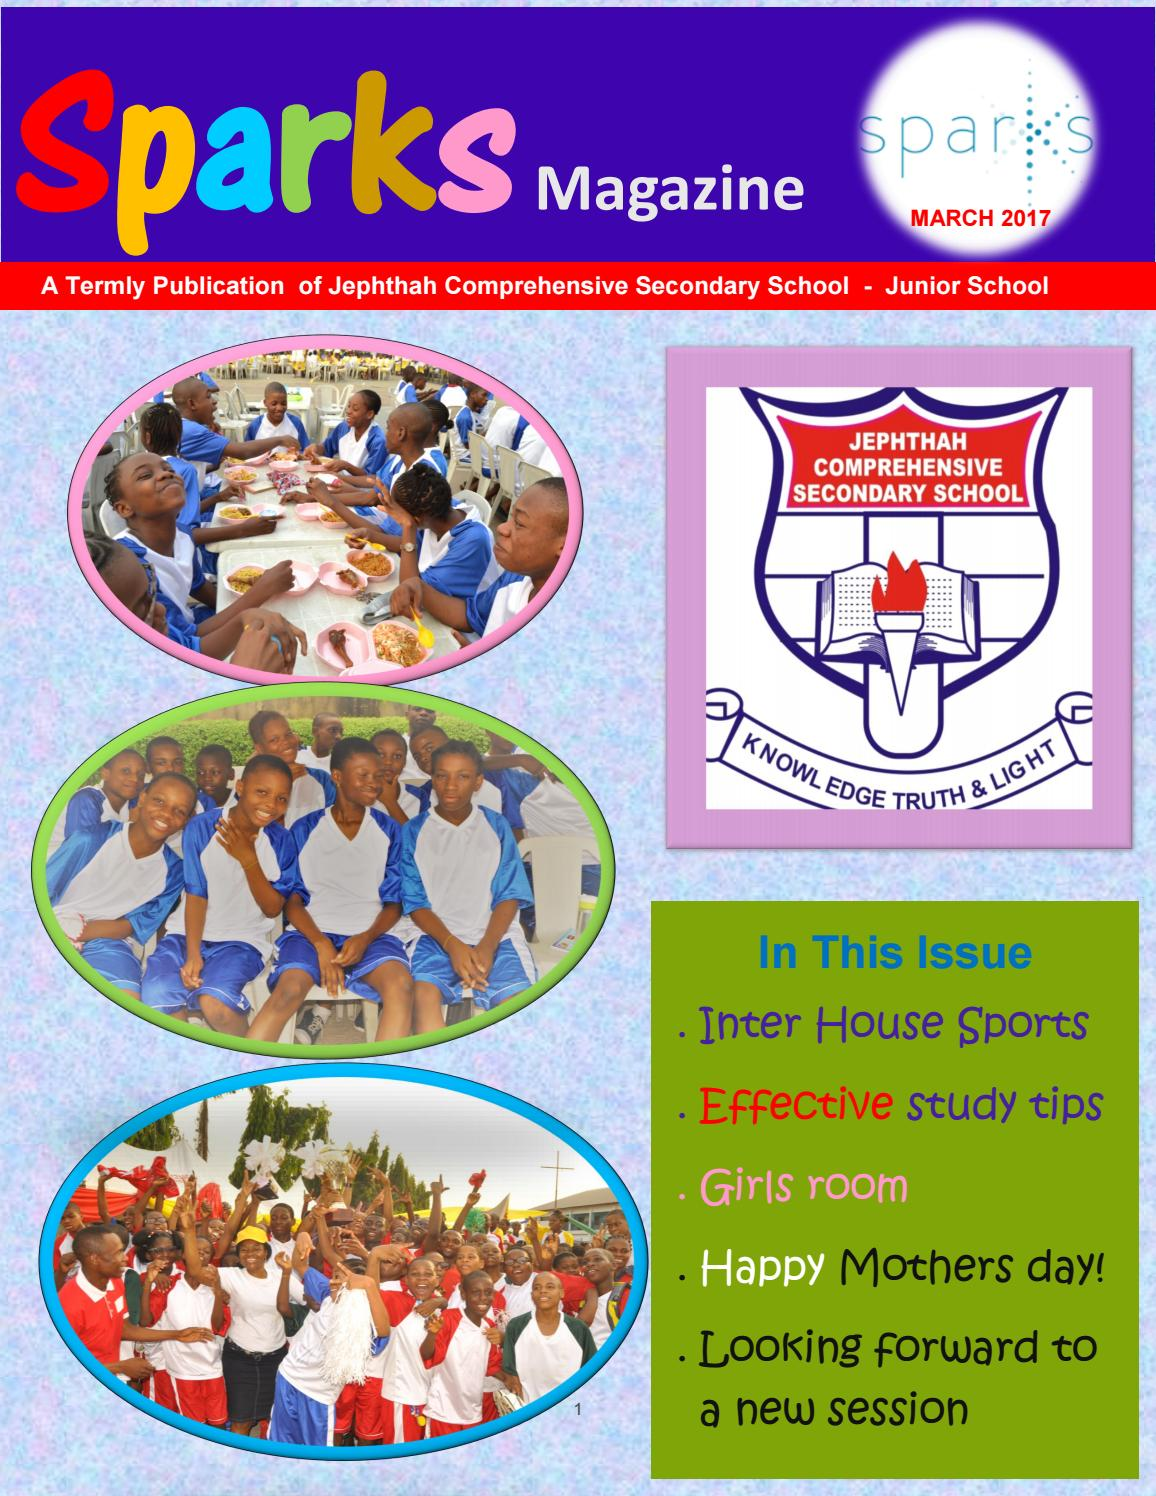 Sparks Magazine March 2017 edition by JEPHTHAH COMPREHENSIVE